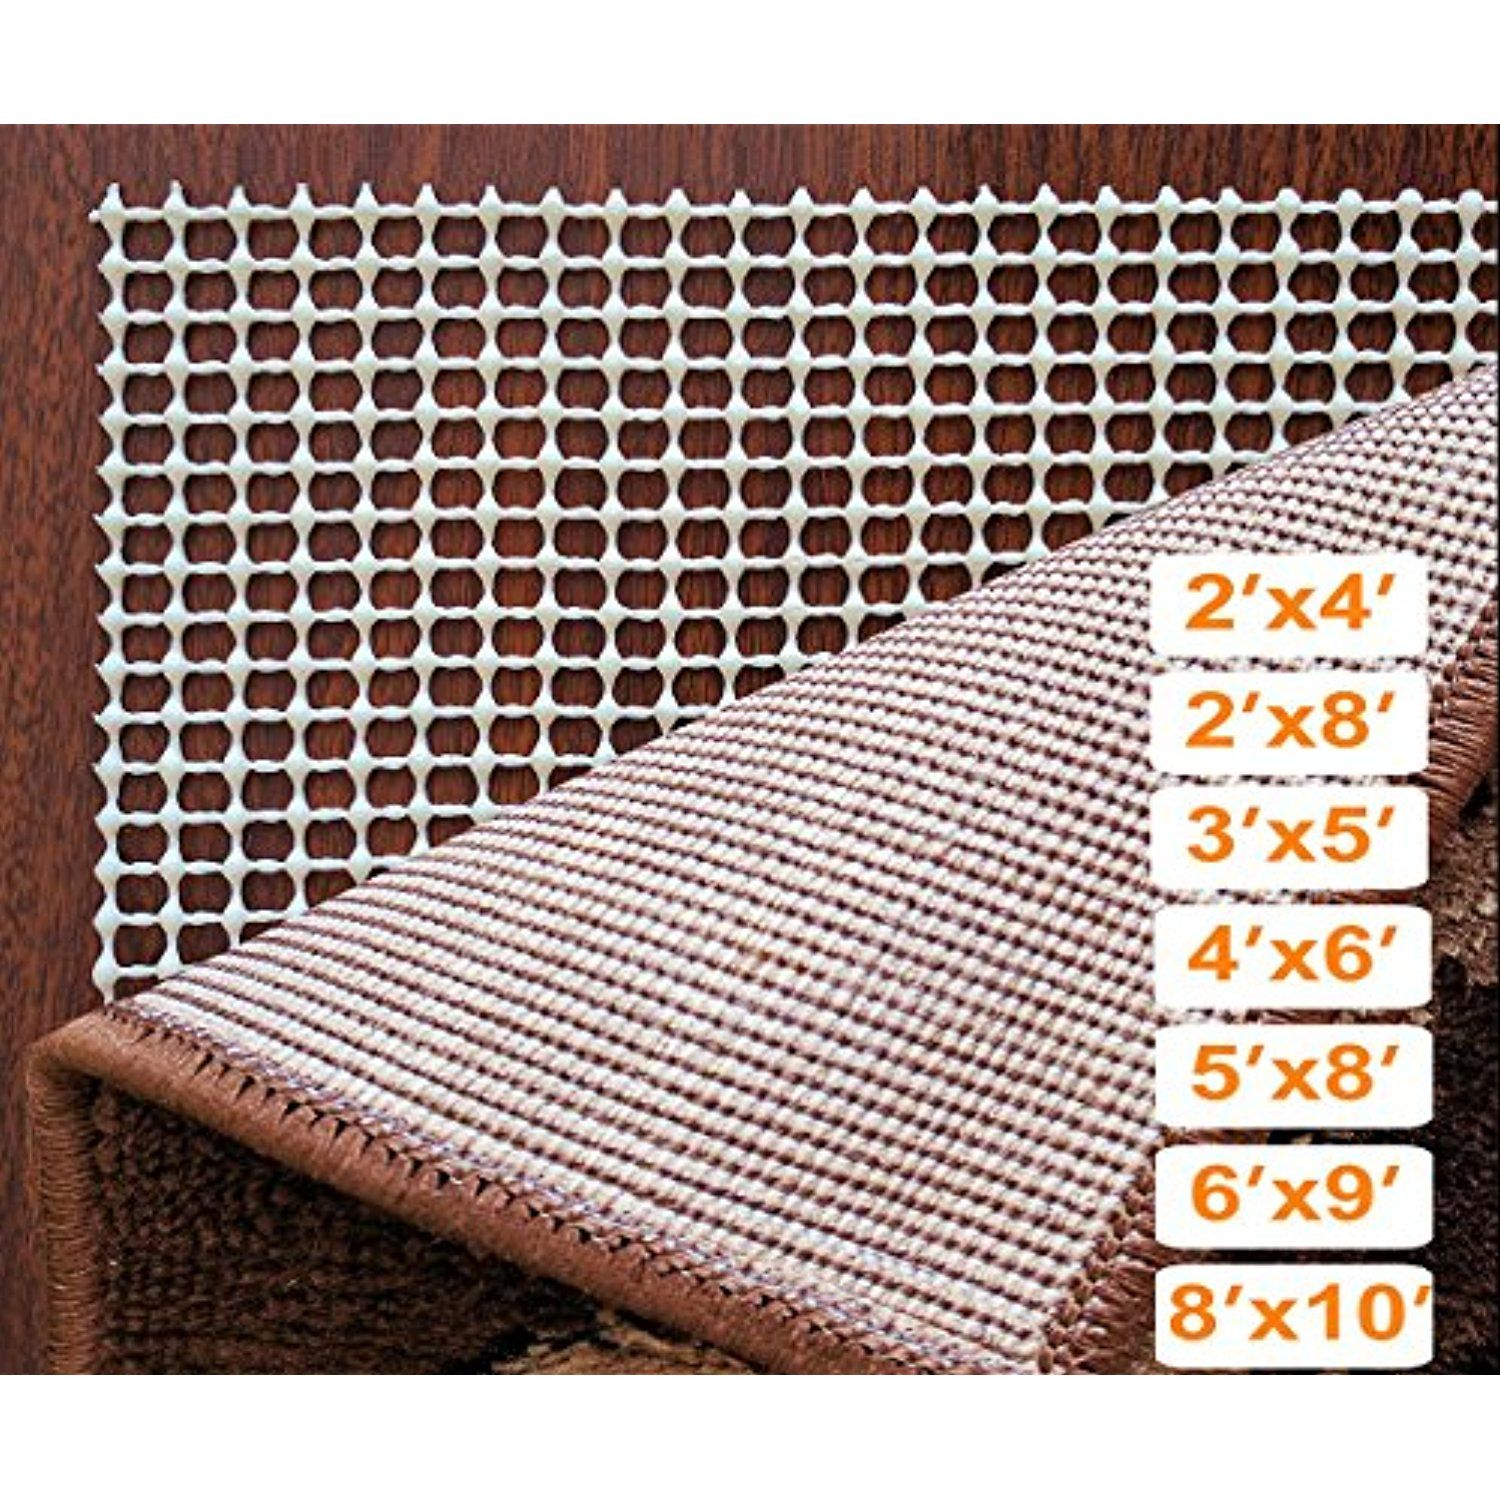 Stepbasic Rug Pads Non Slip Padding For Area Rugs Skid Pad Floor Protector